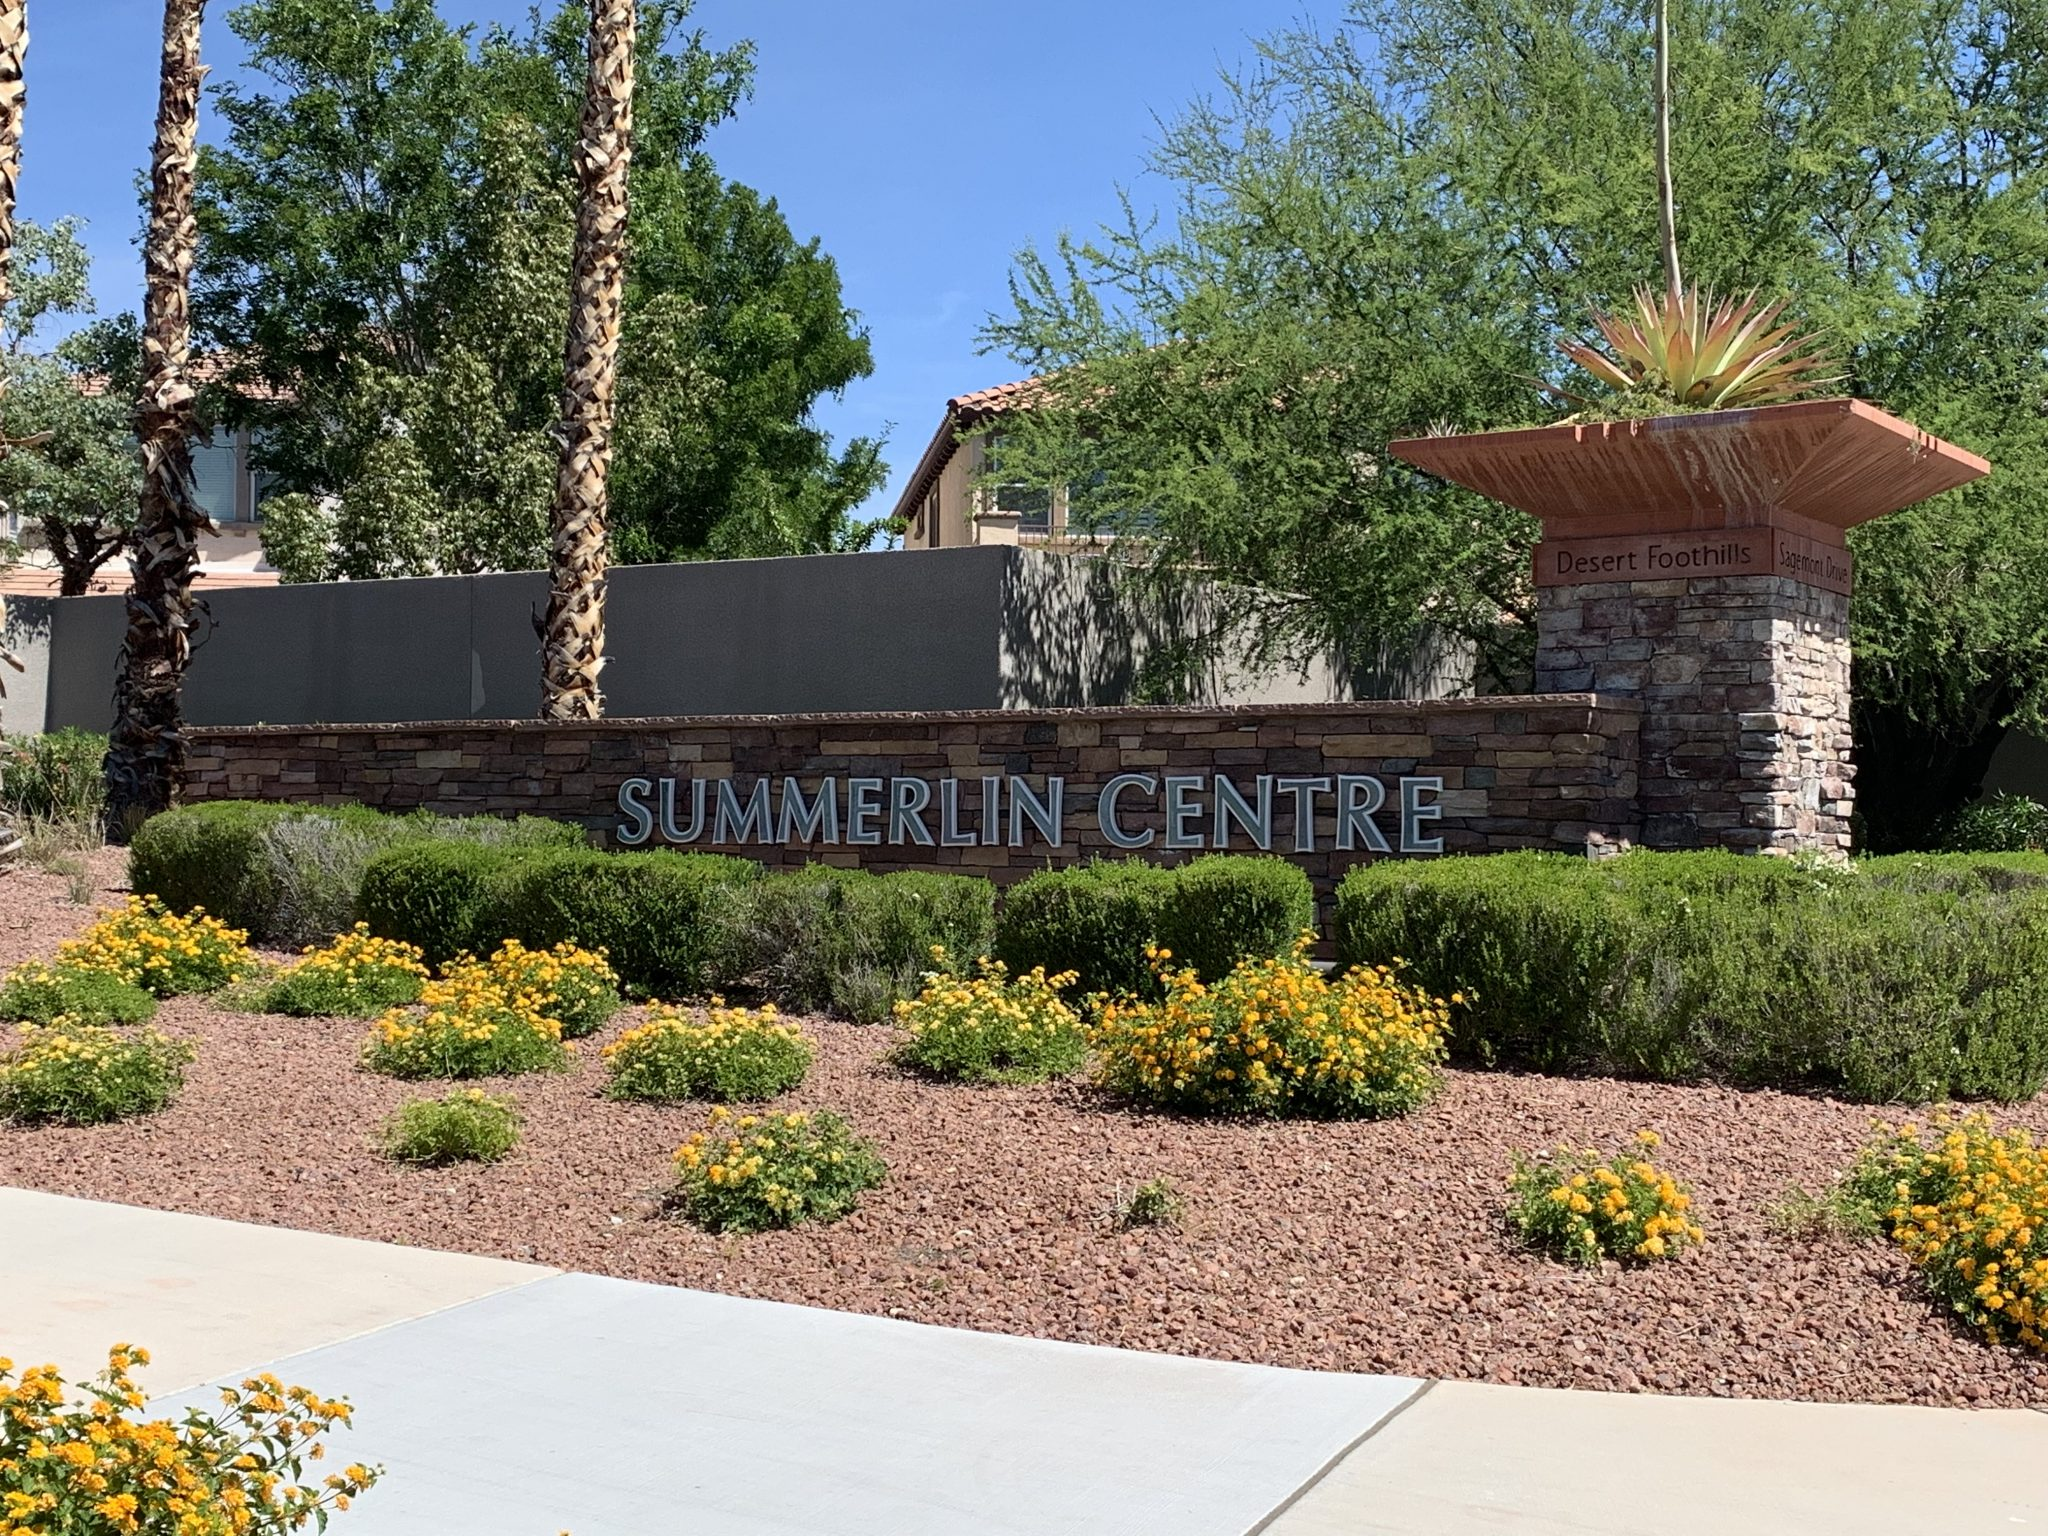 Summerlin Centre Village